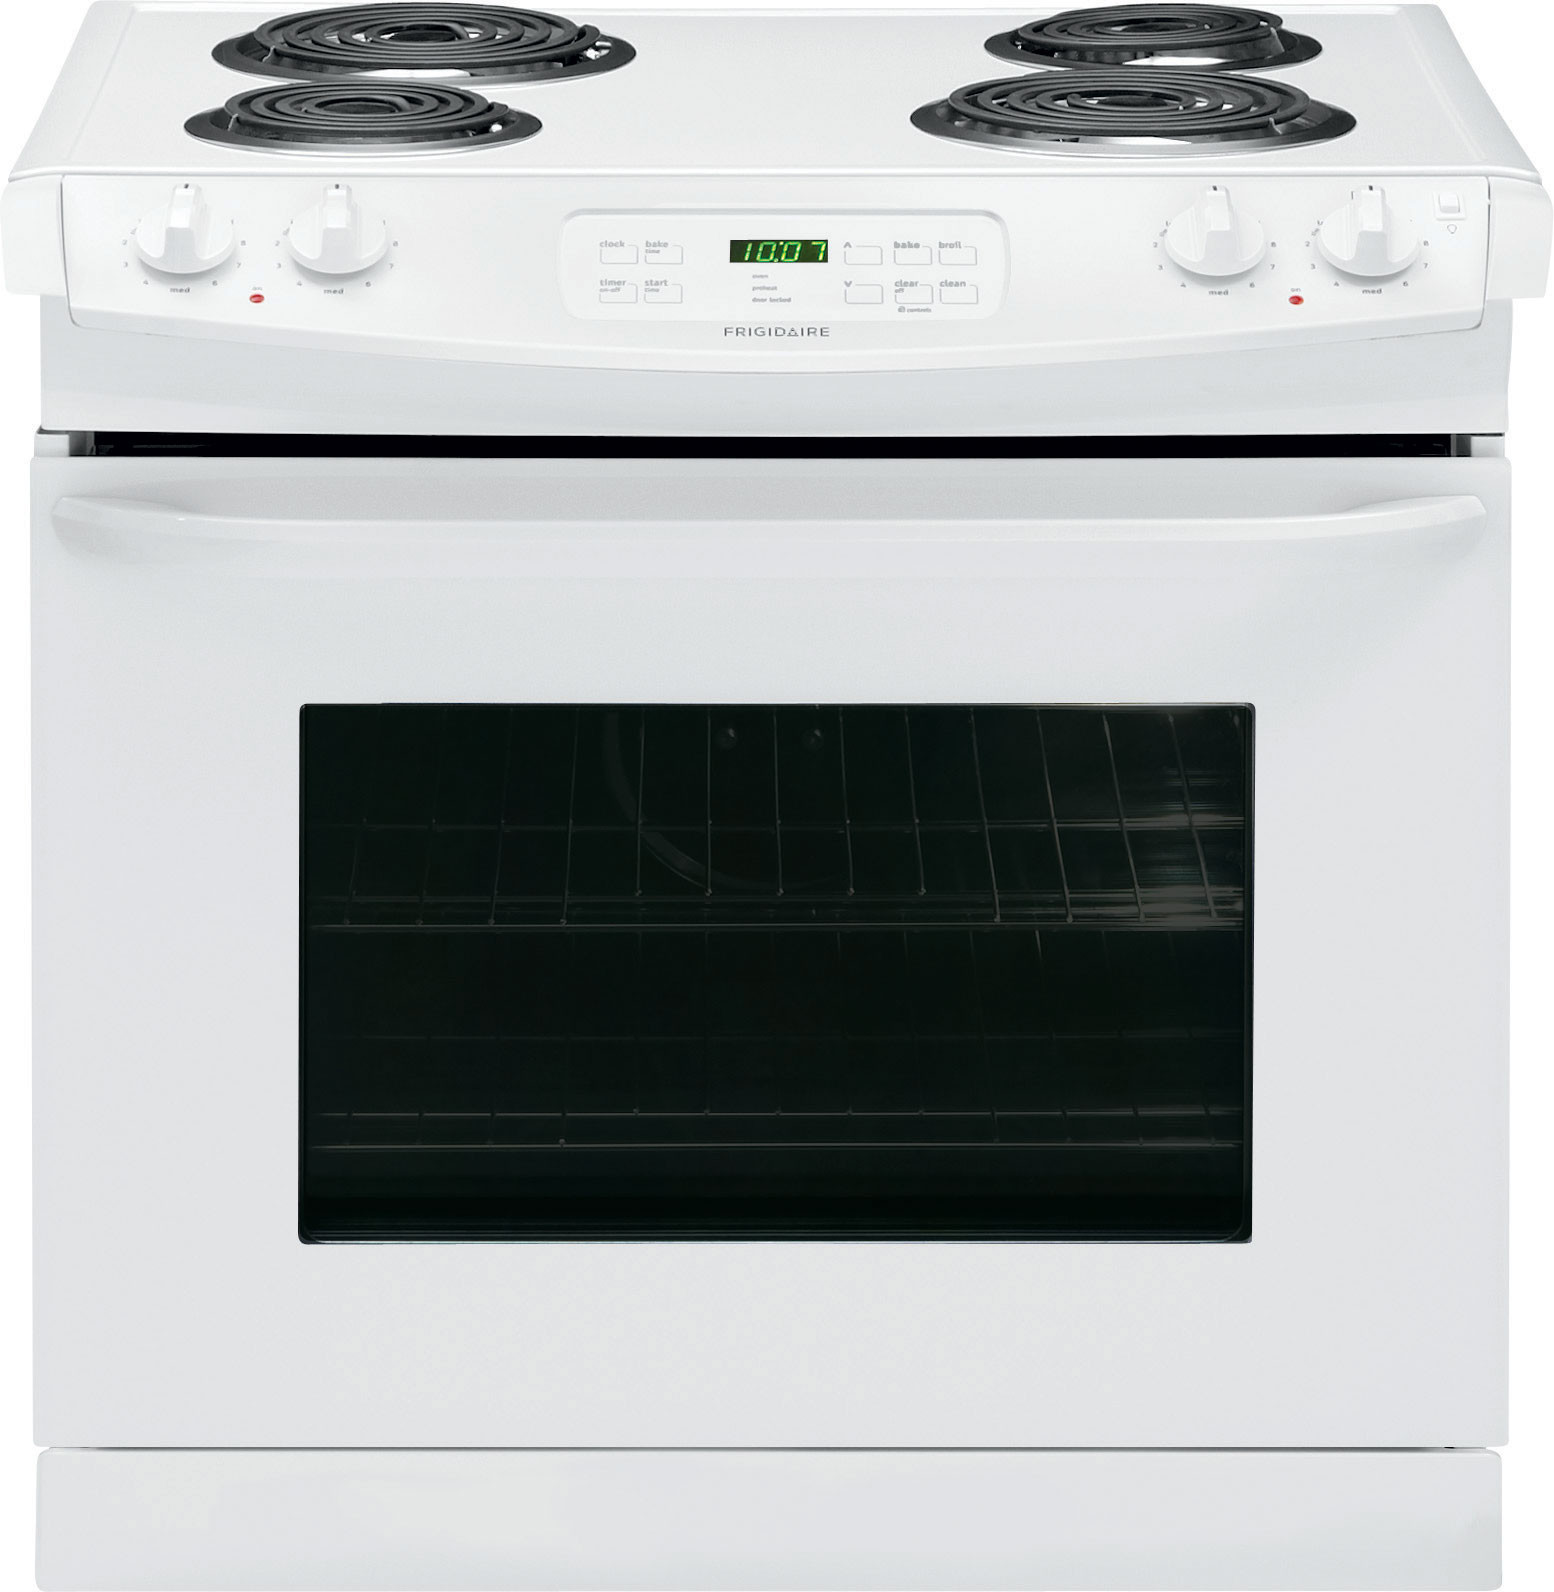 Frigidaire Ffed3015pw 30 Inch Drop In Electric Range With Multiple